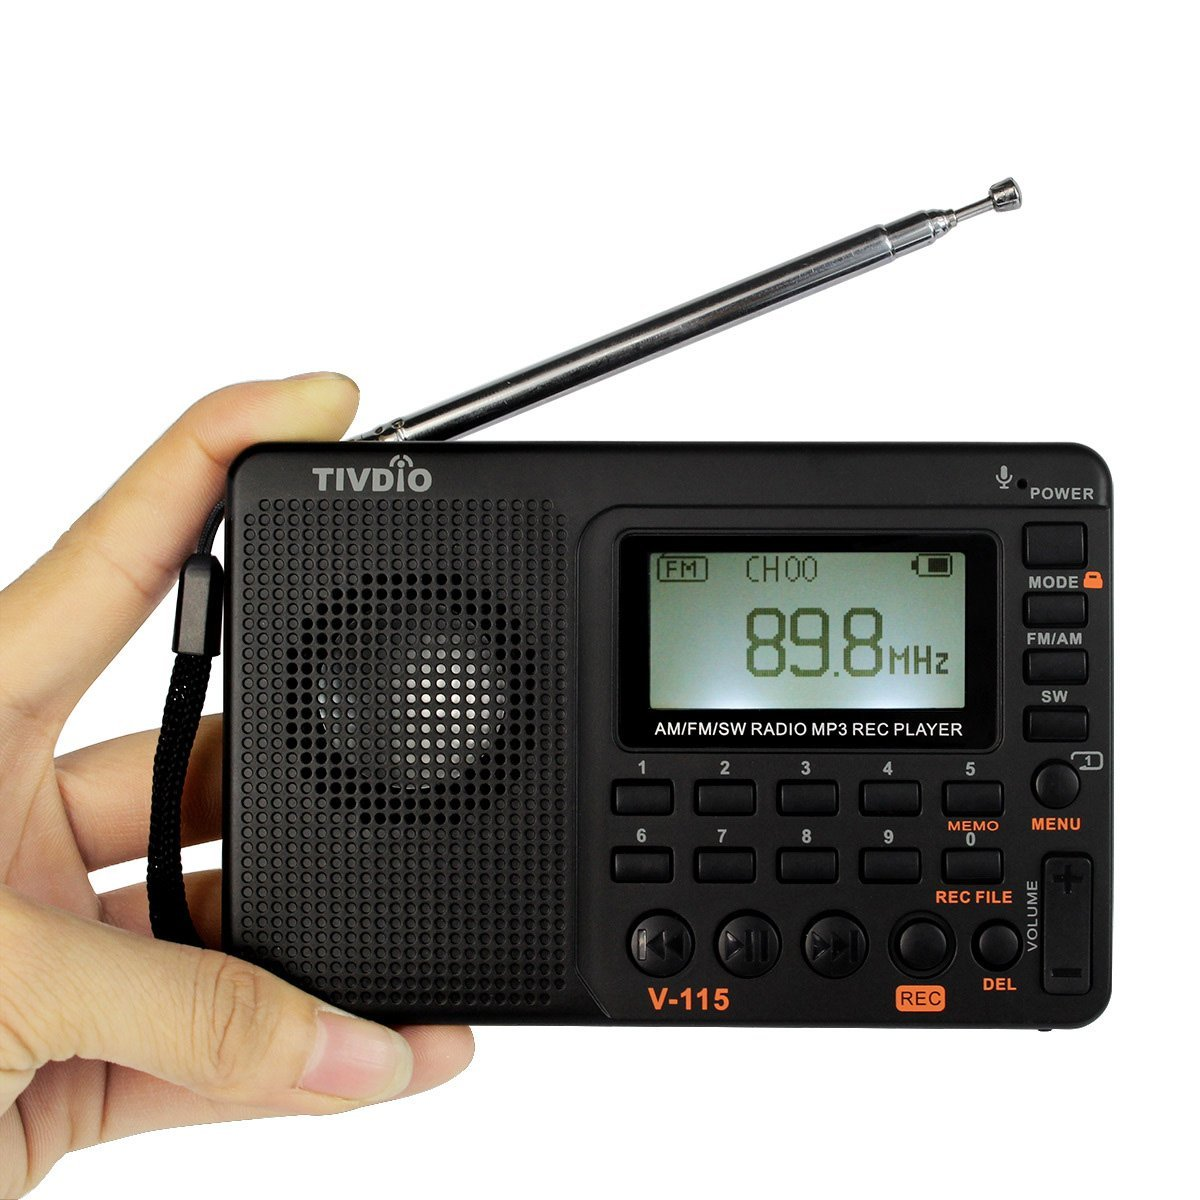 TIVDIO V-115 Portable AM FM Radio with Shortwave Radio Transistor